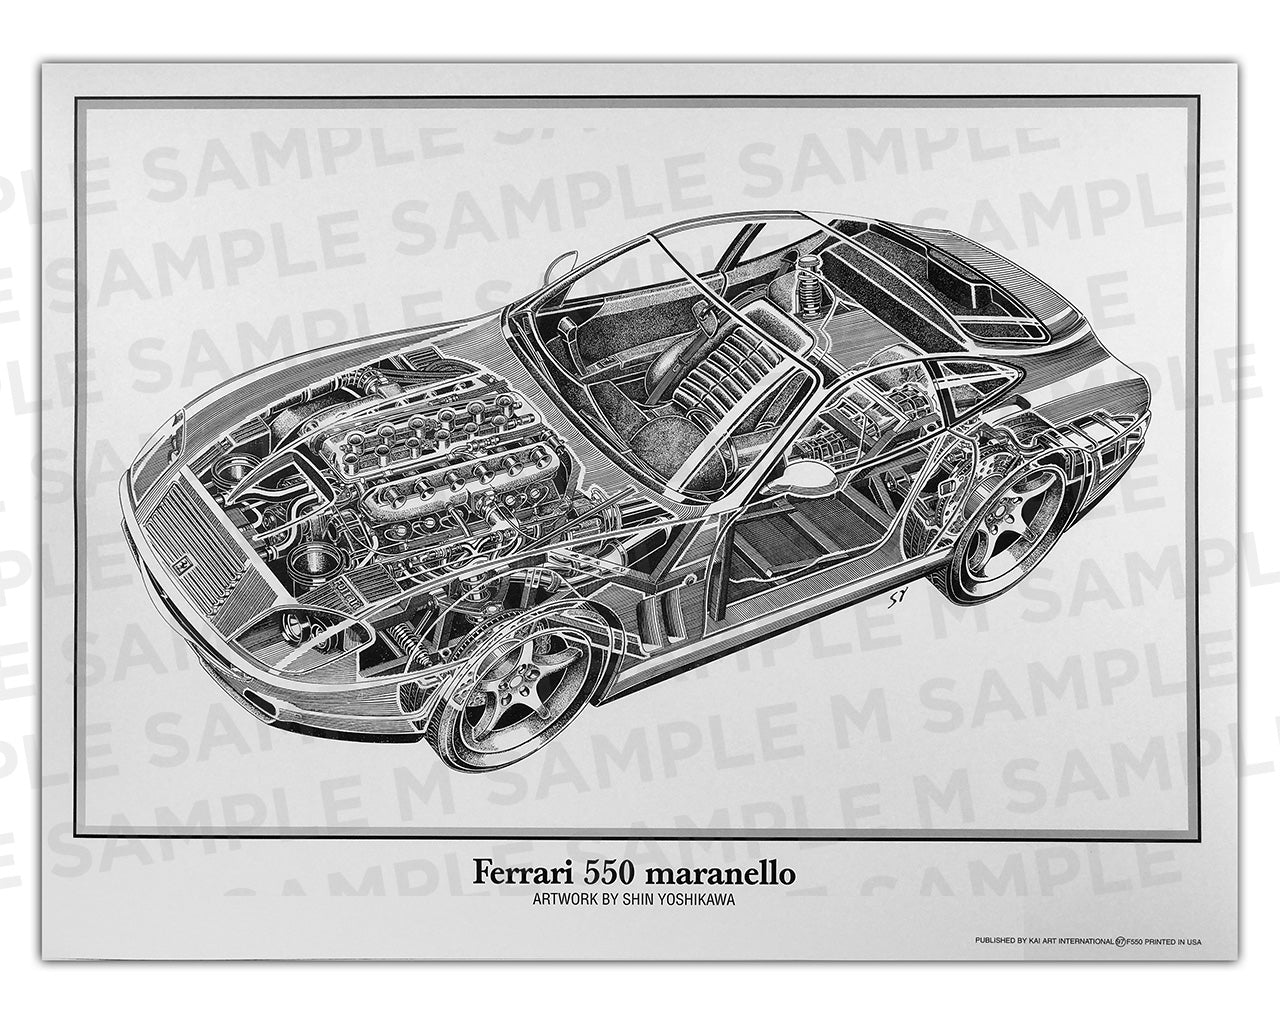 Authentic Ferrari 550 Maranello cutaway drawing print by renowned automotive artist Shin Yoshikawa